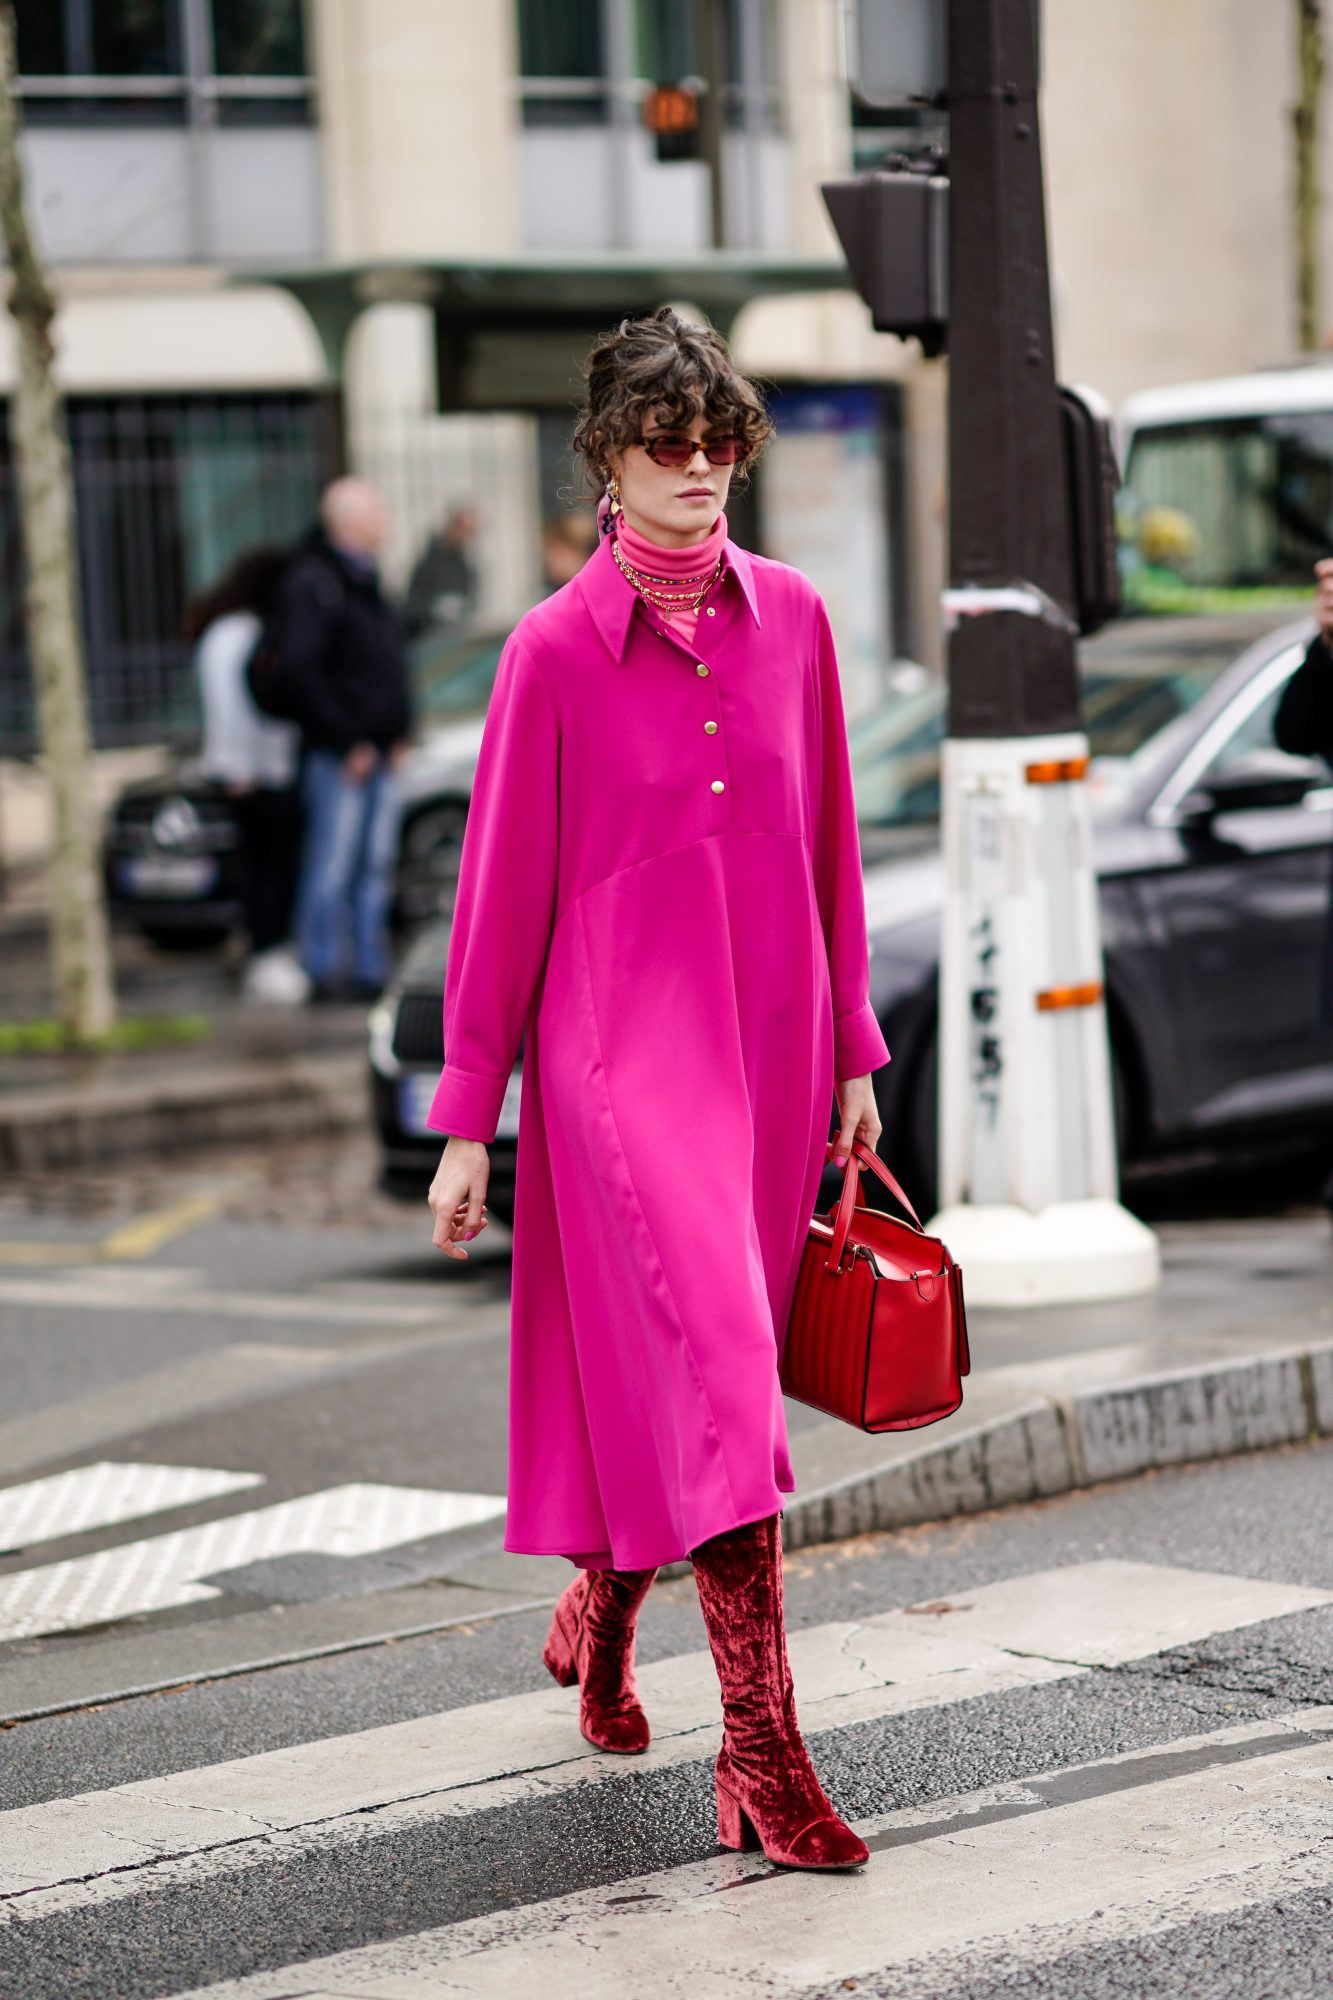 Pink dress outfit idea